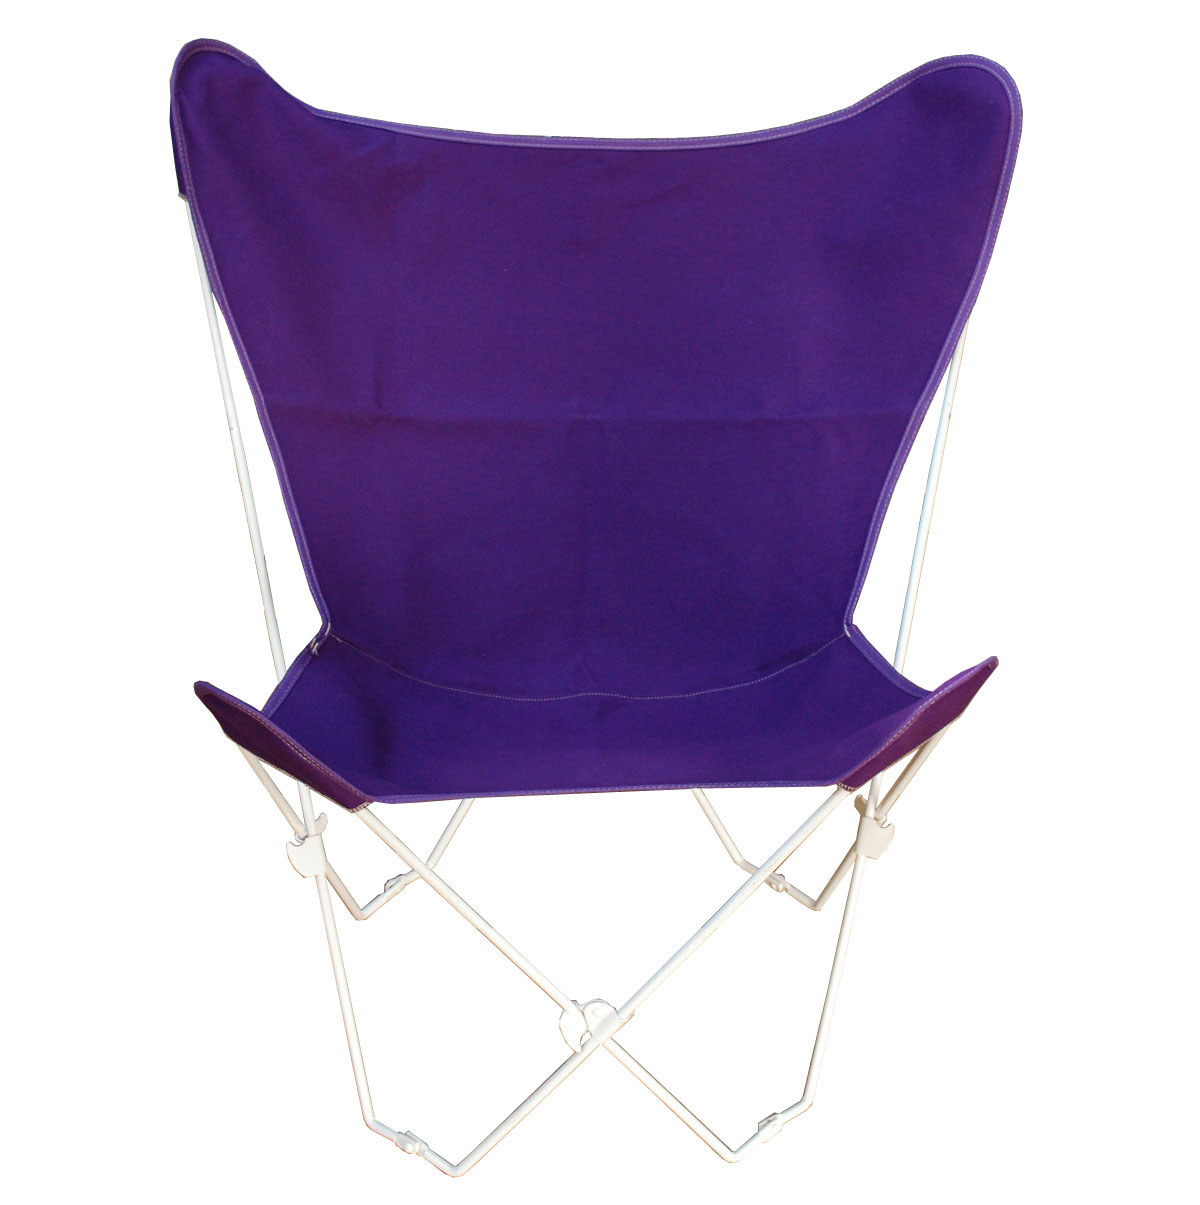 Butterfly Chair and Cover Combination With White Frame, Purple